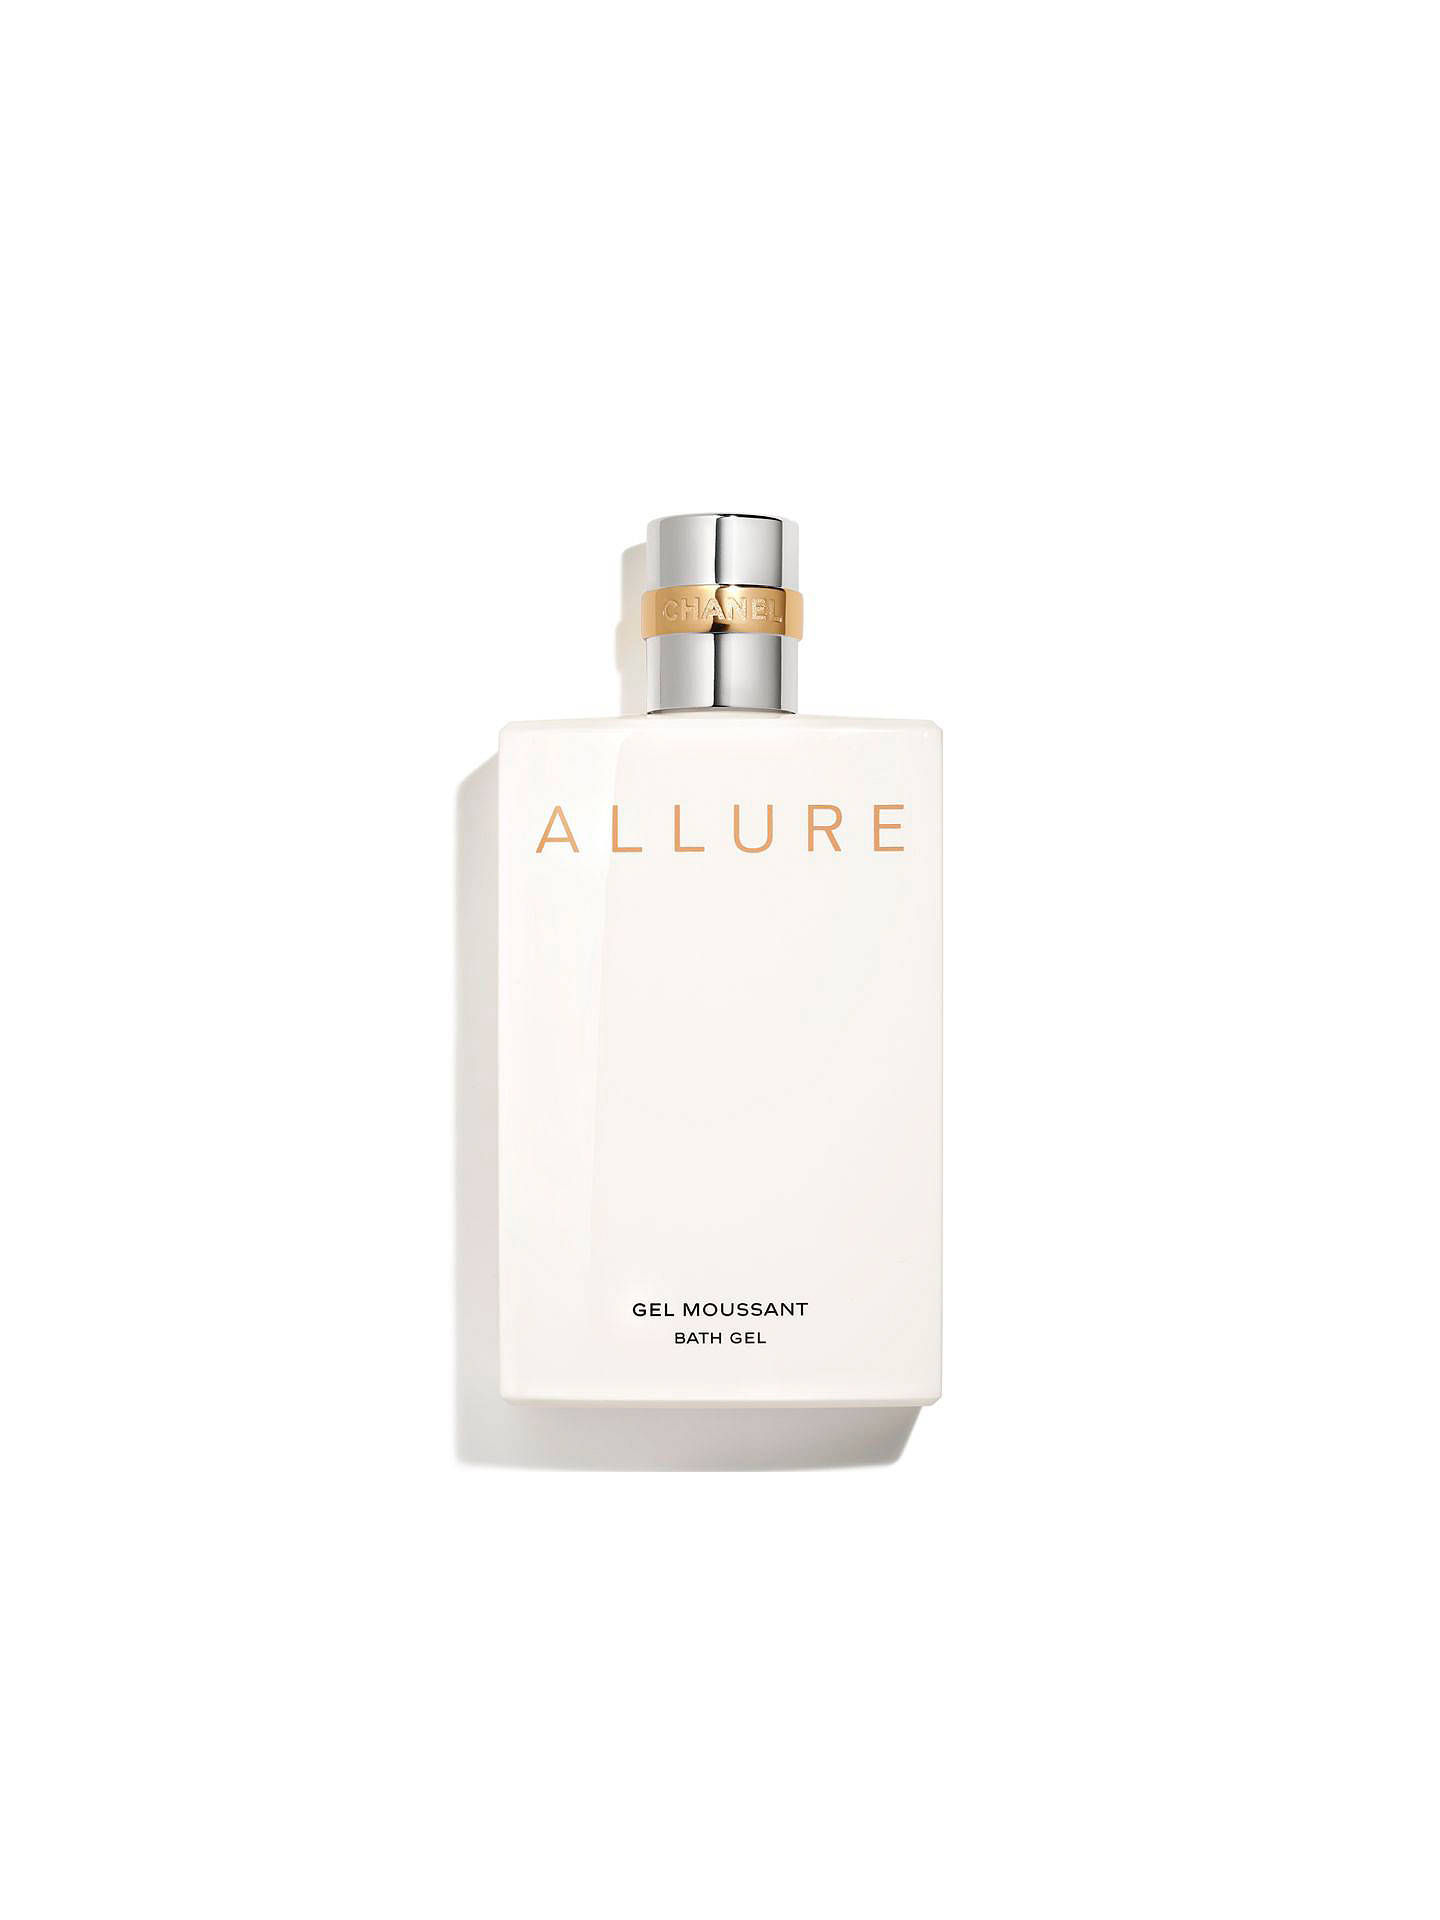 57a3be557ac Buy CHANEL ALLURE Bath Gel Online at johnlewis.com